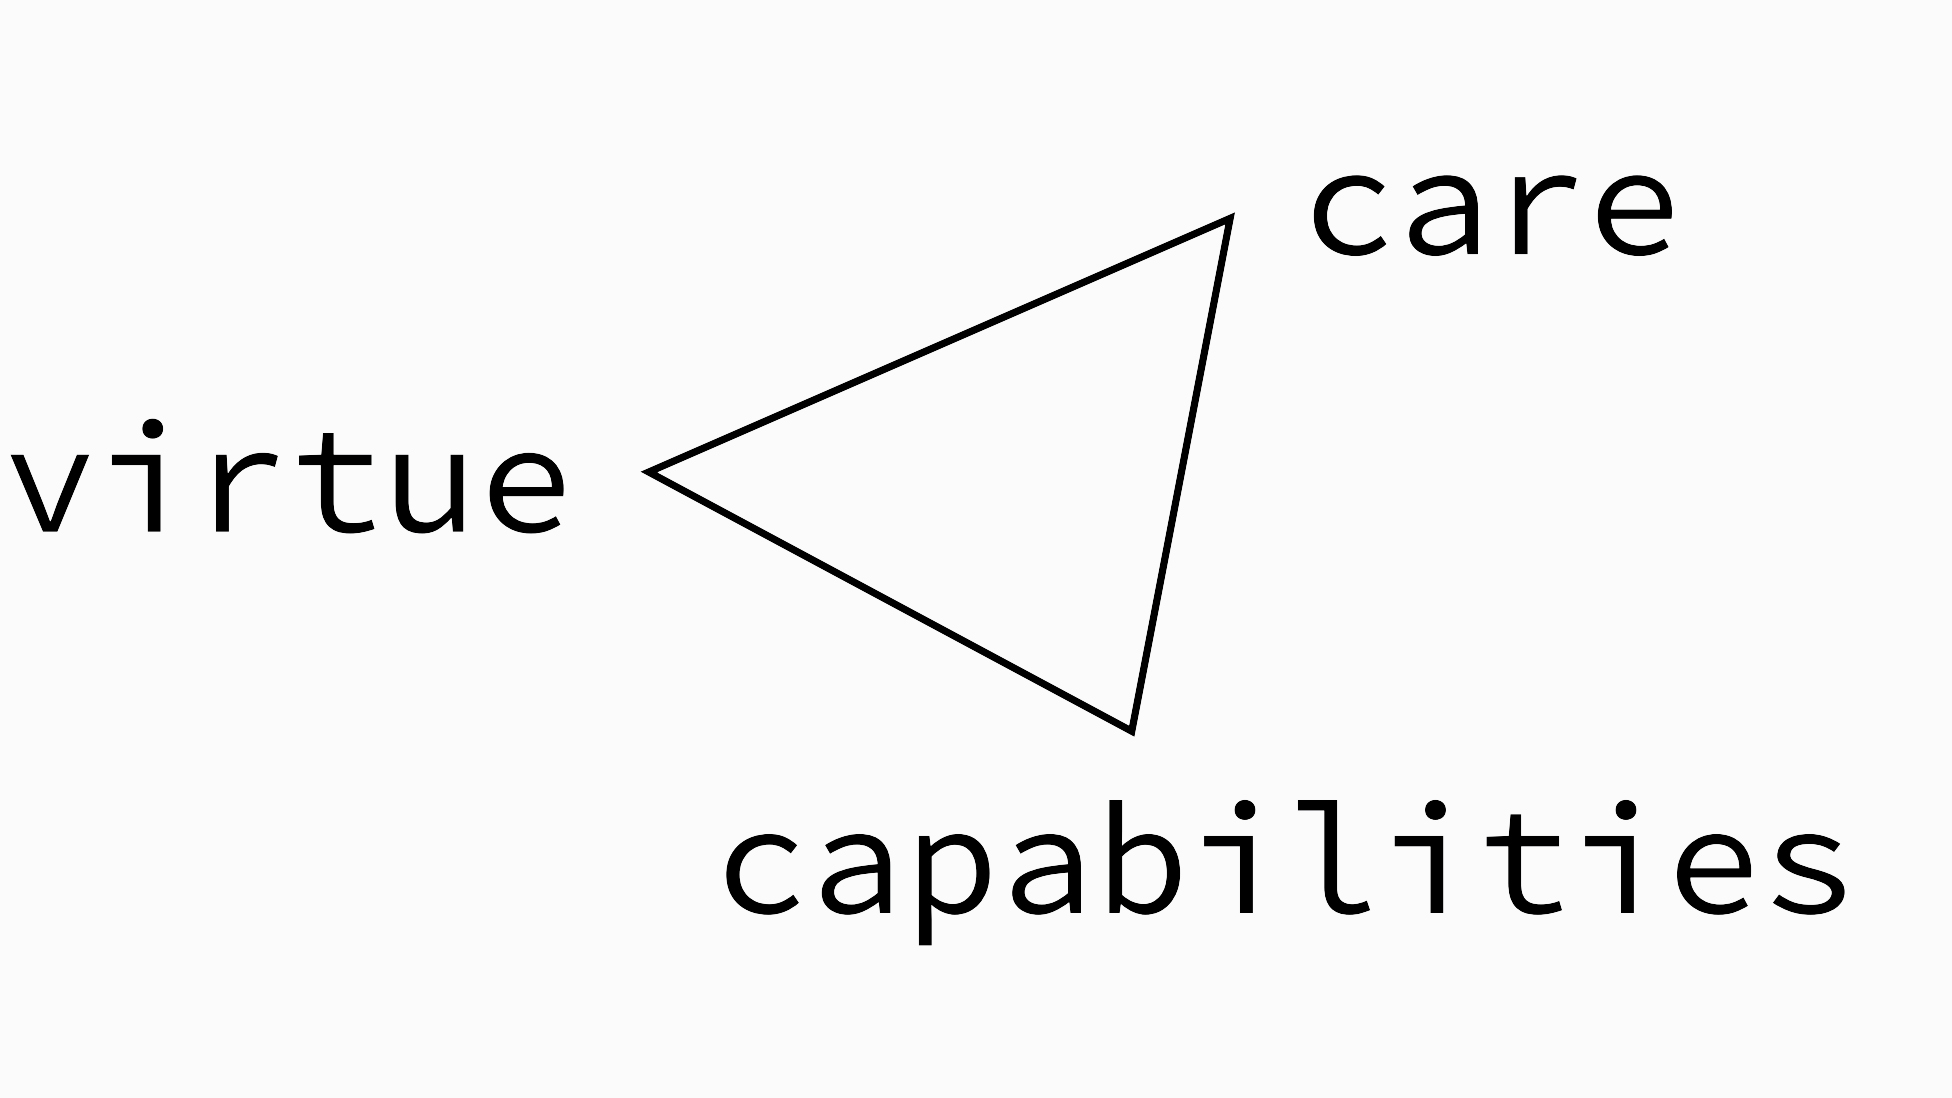 Framework showing virtue, capabilities, and care.